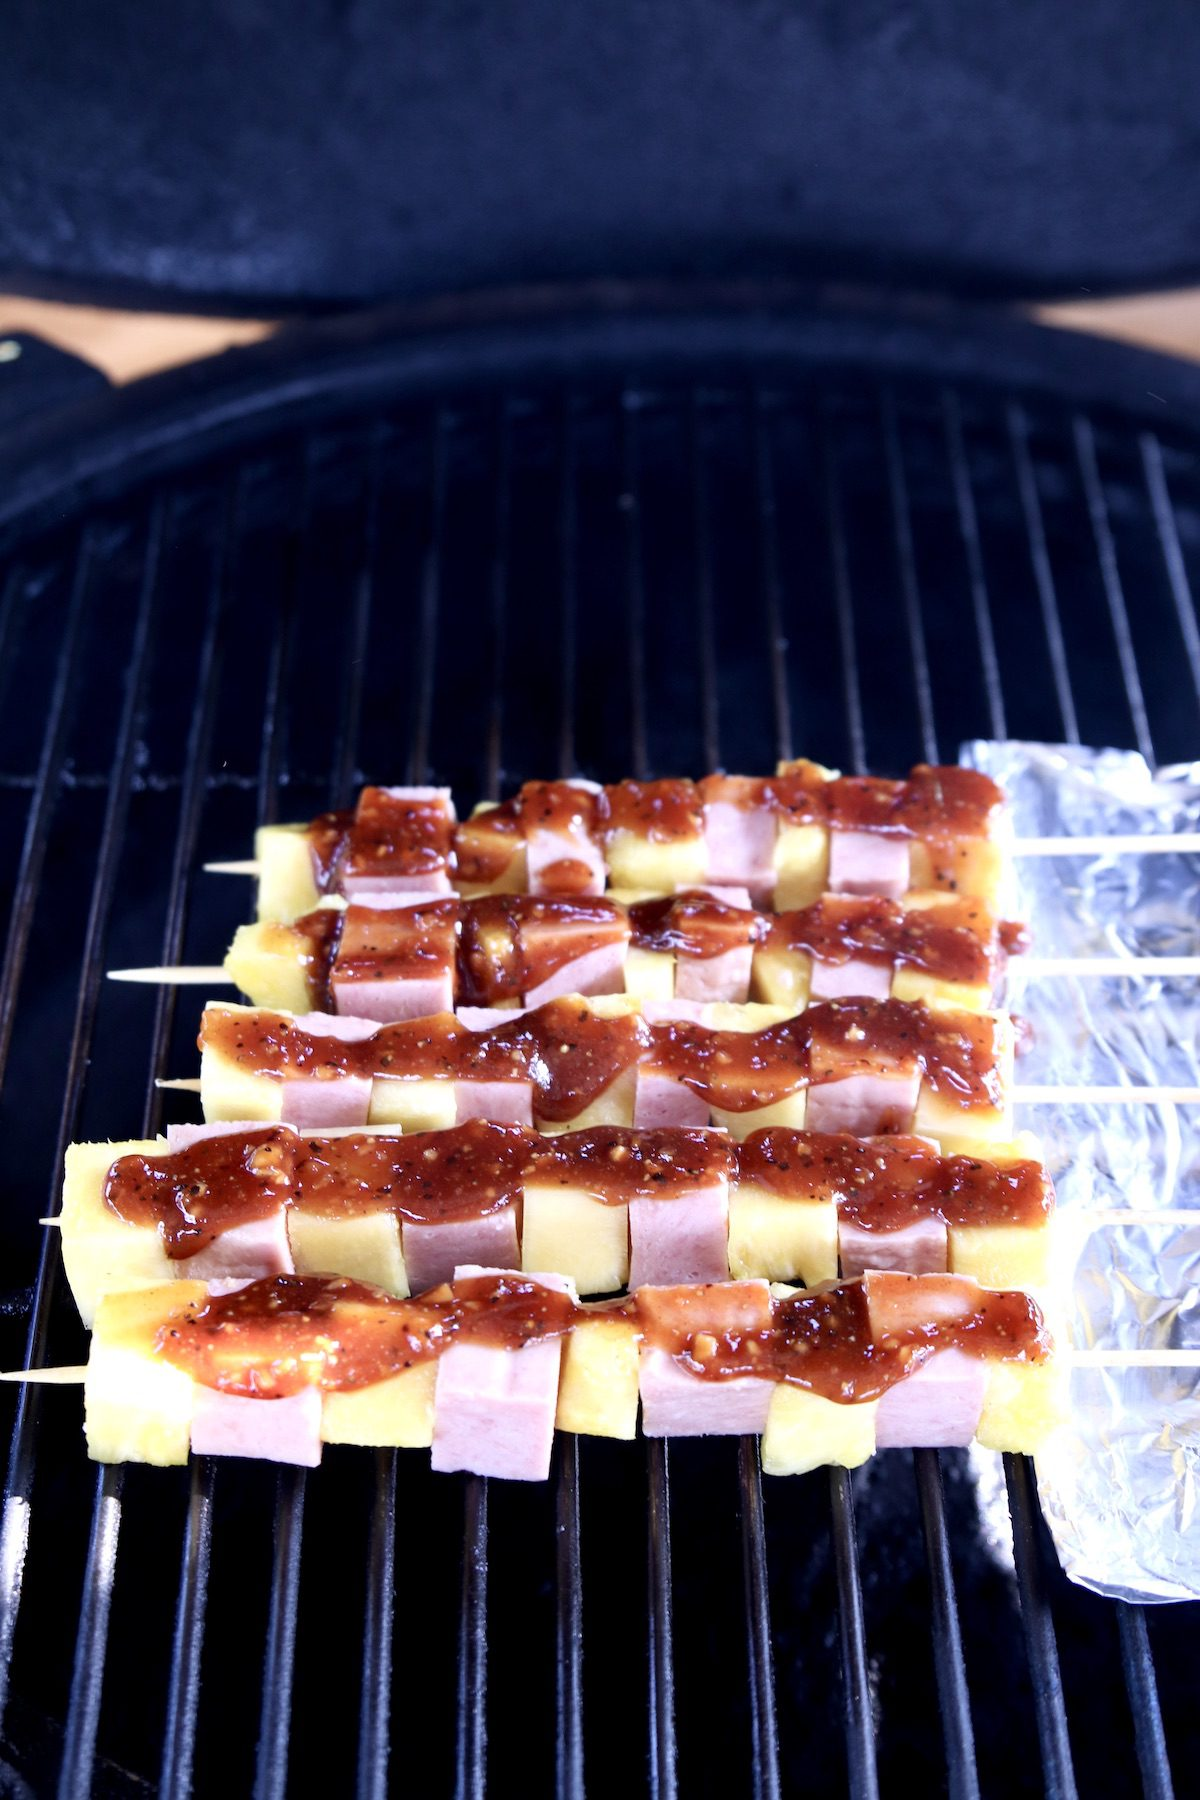 grill with bbq kabobs